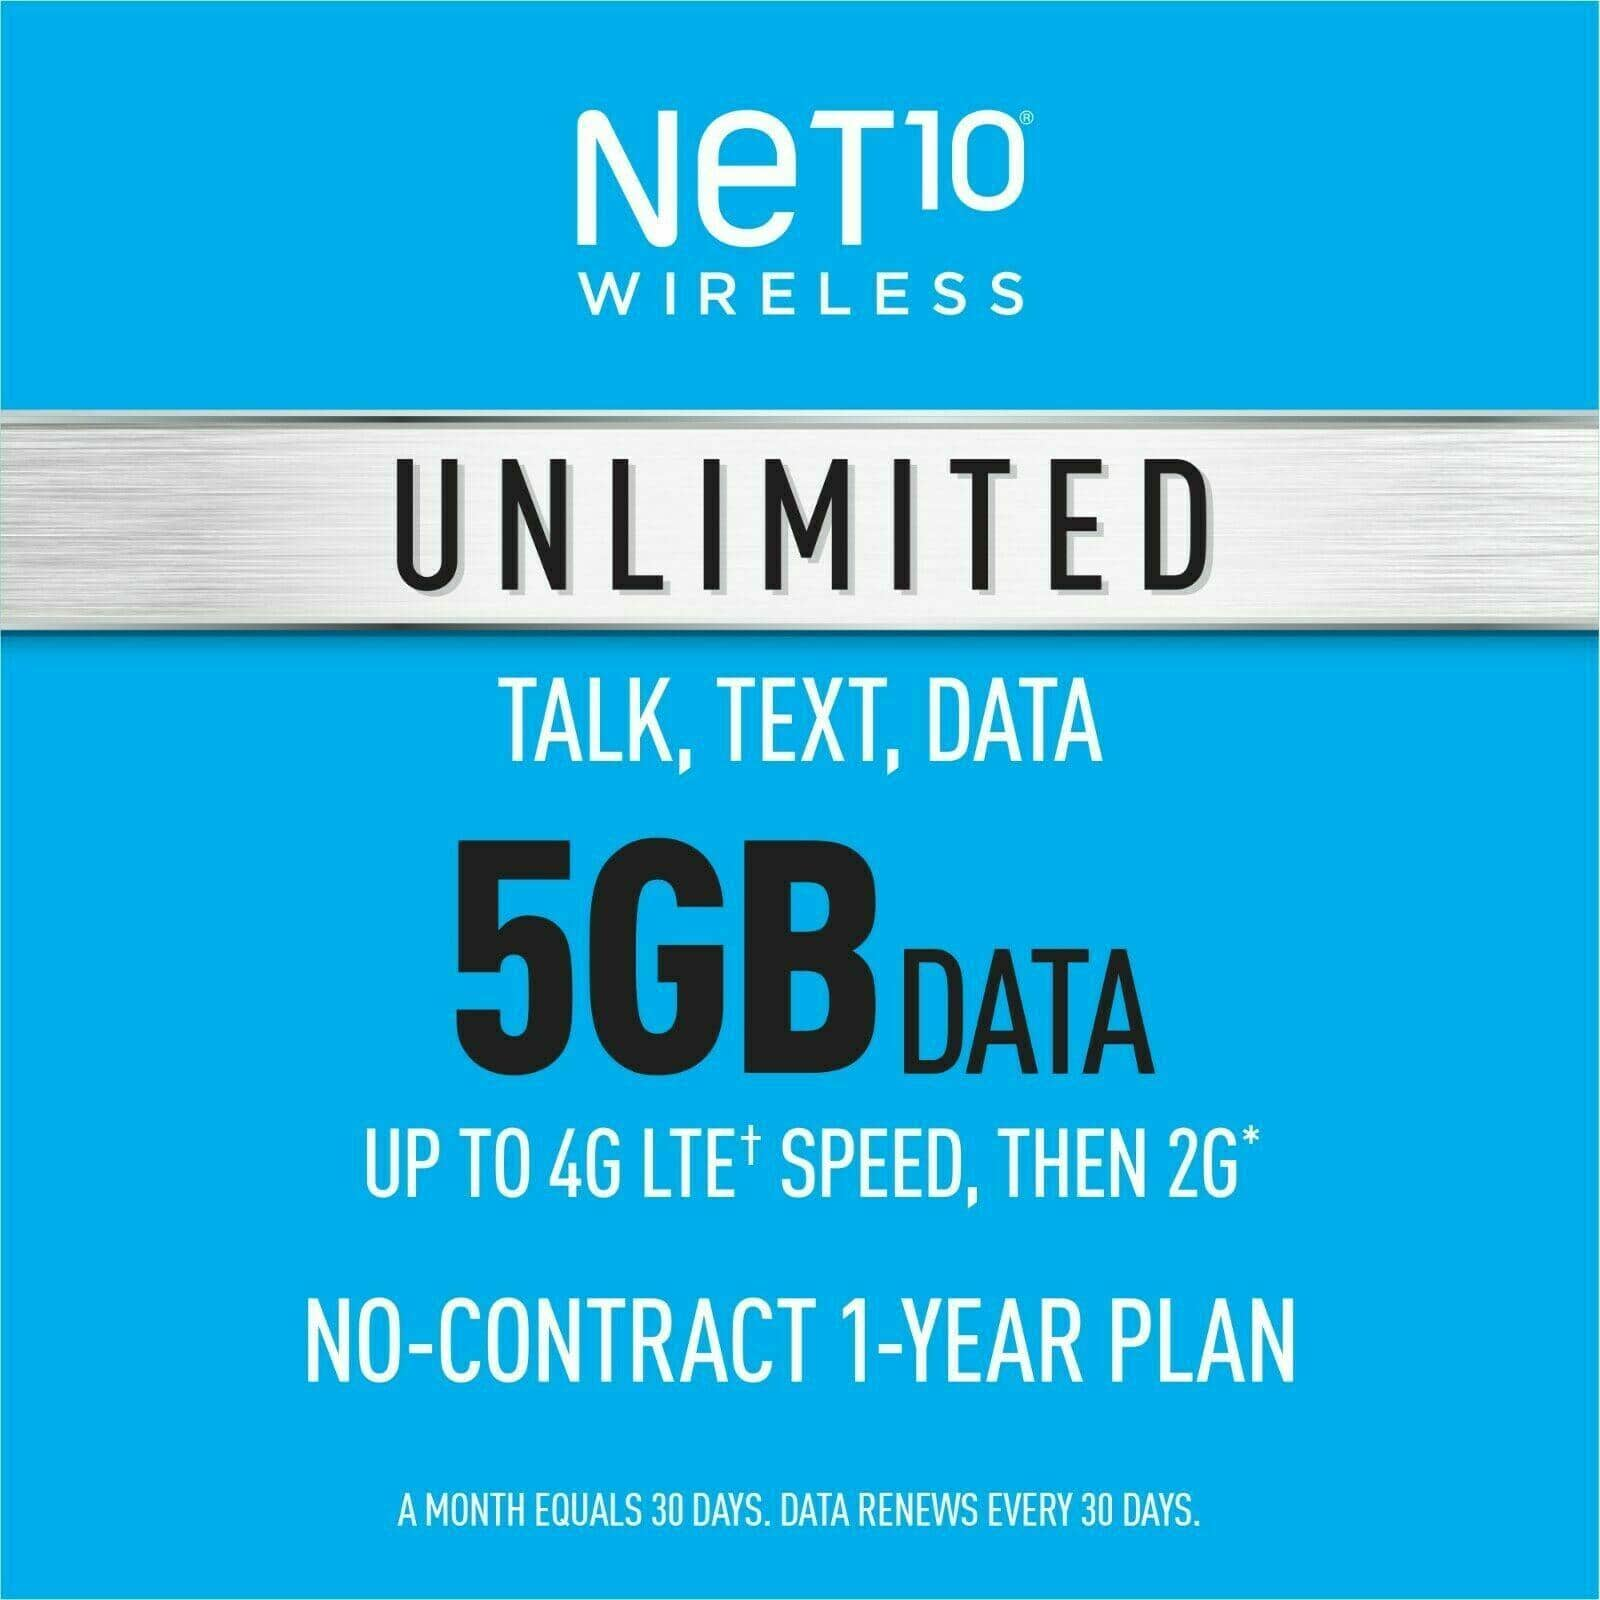 1-Year Net10 Wireless Prepaid Plan: Unlimited Talk, Text & 5GB LTE / Unlimited 2G Data Per Month on AT&T or T-Mobile Network - $159.99 ($13.33/month)